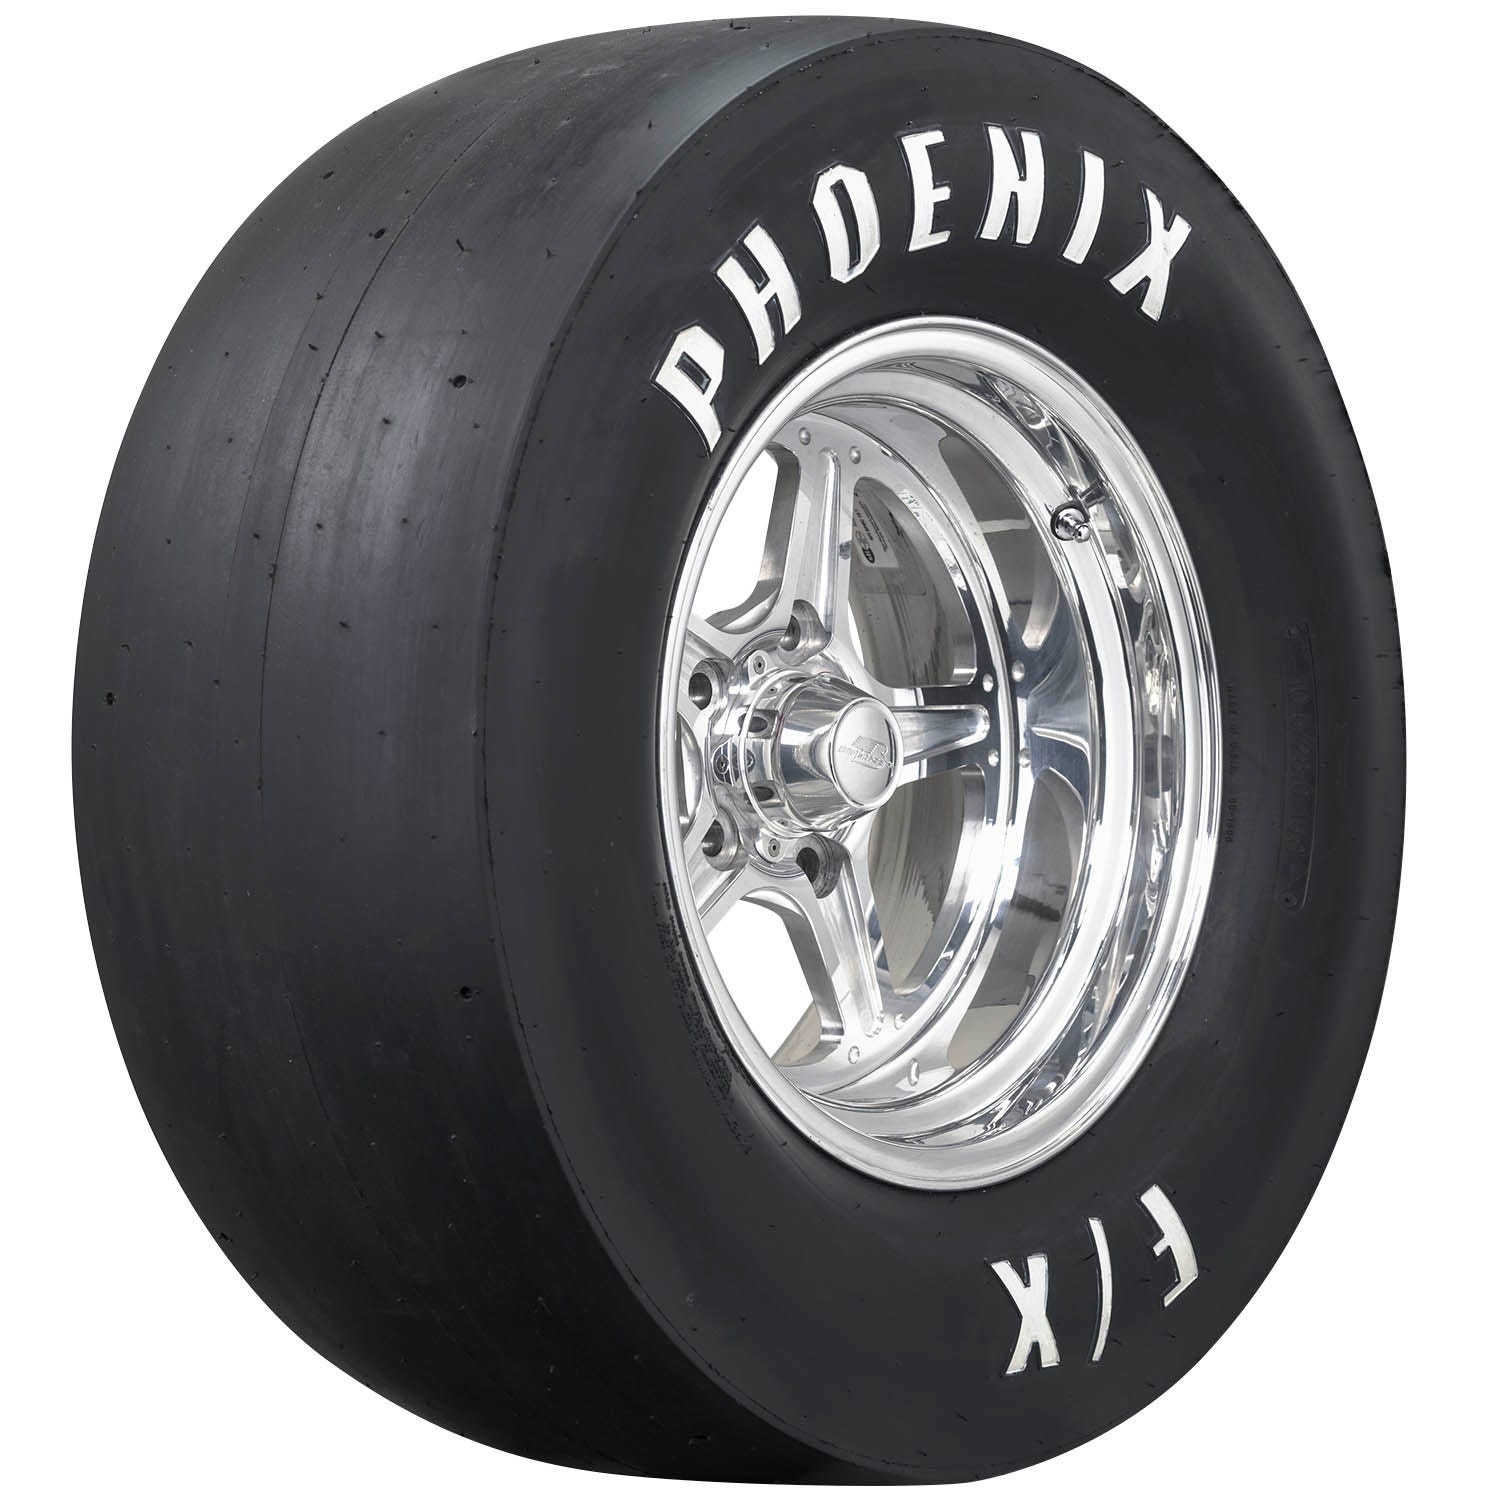 New Phoenix Race Tires Sizes Ready for the 2019 Drag Racing Season